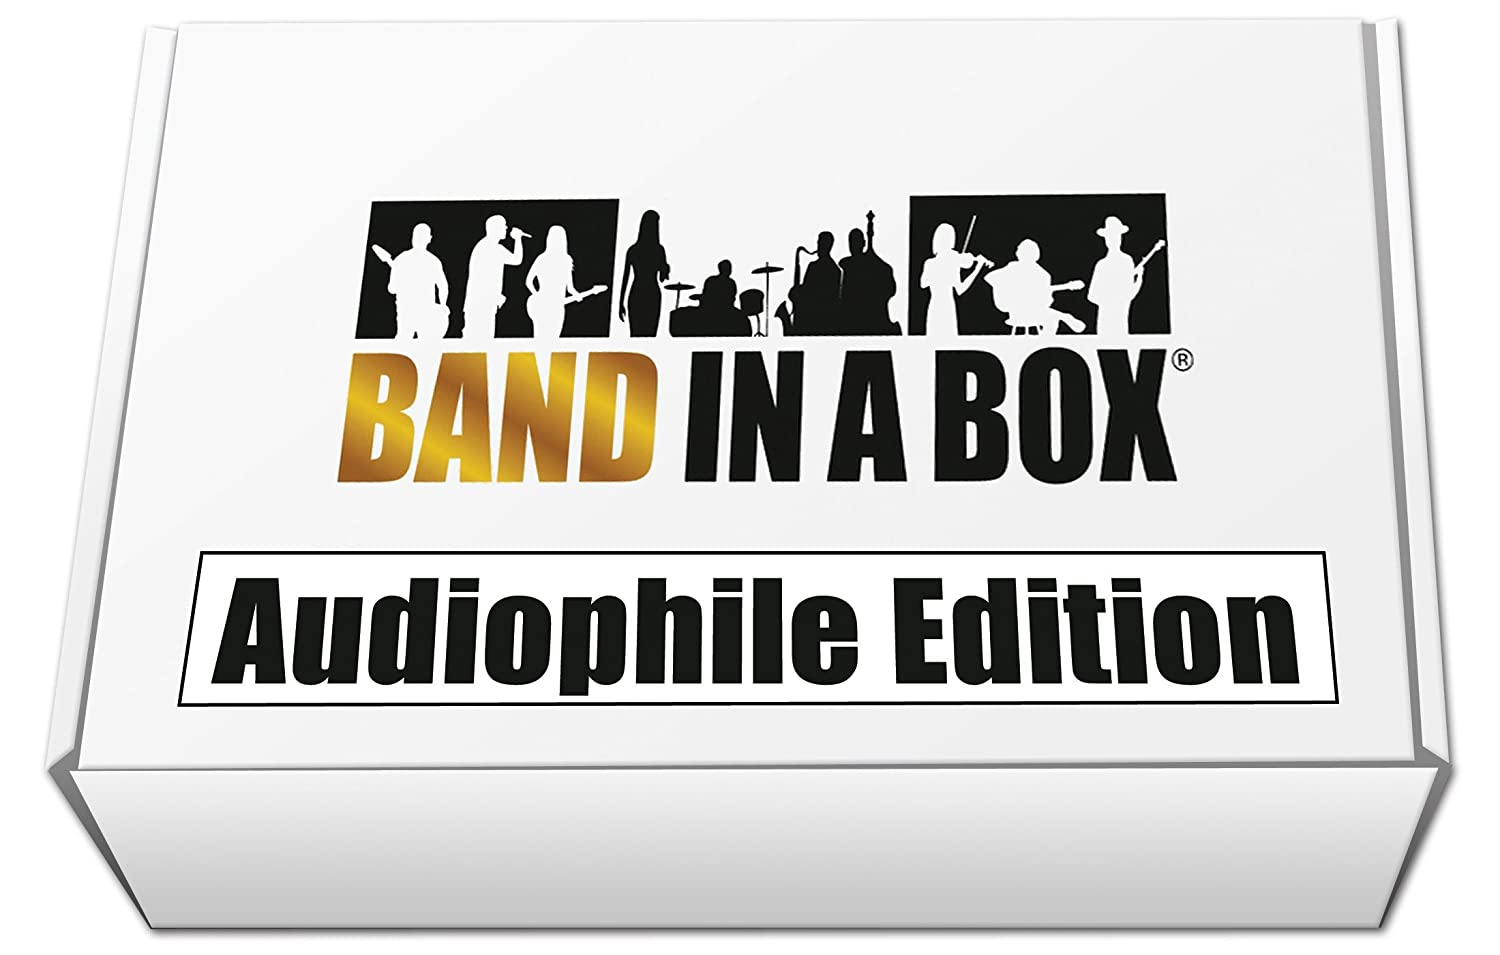 PG Music Band-in-a-Box 2018 Audiophile Edition [Win USB Hard Drive]